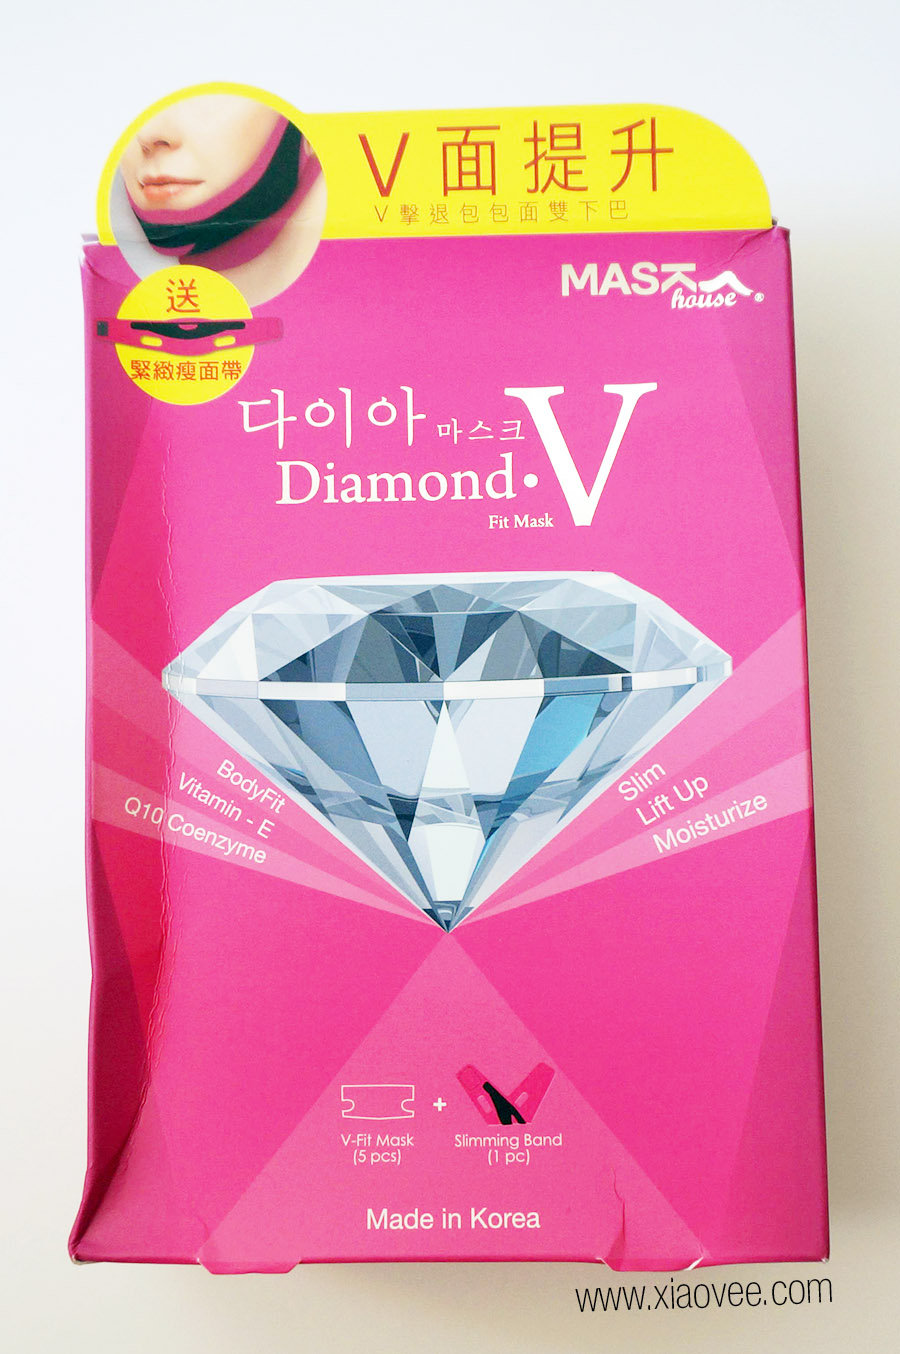 Mask House Diamond V Fit Mask Review, Korean face slimming mask